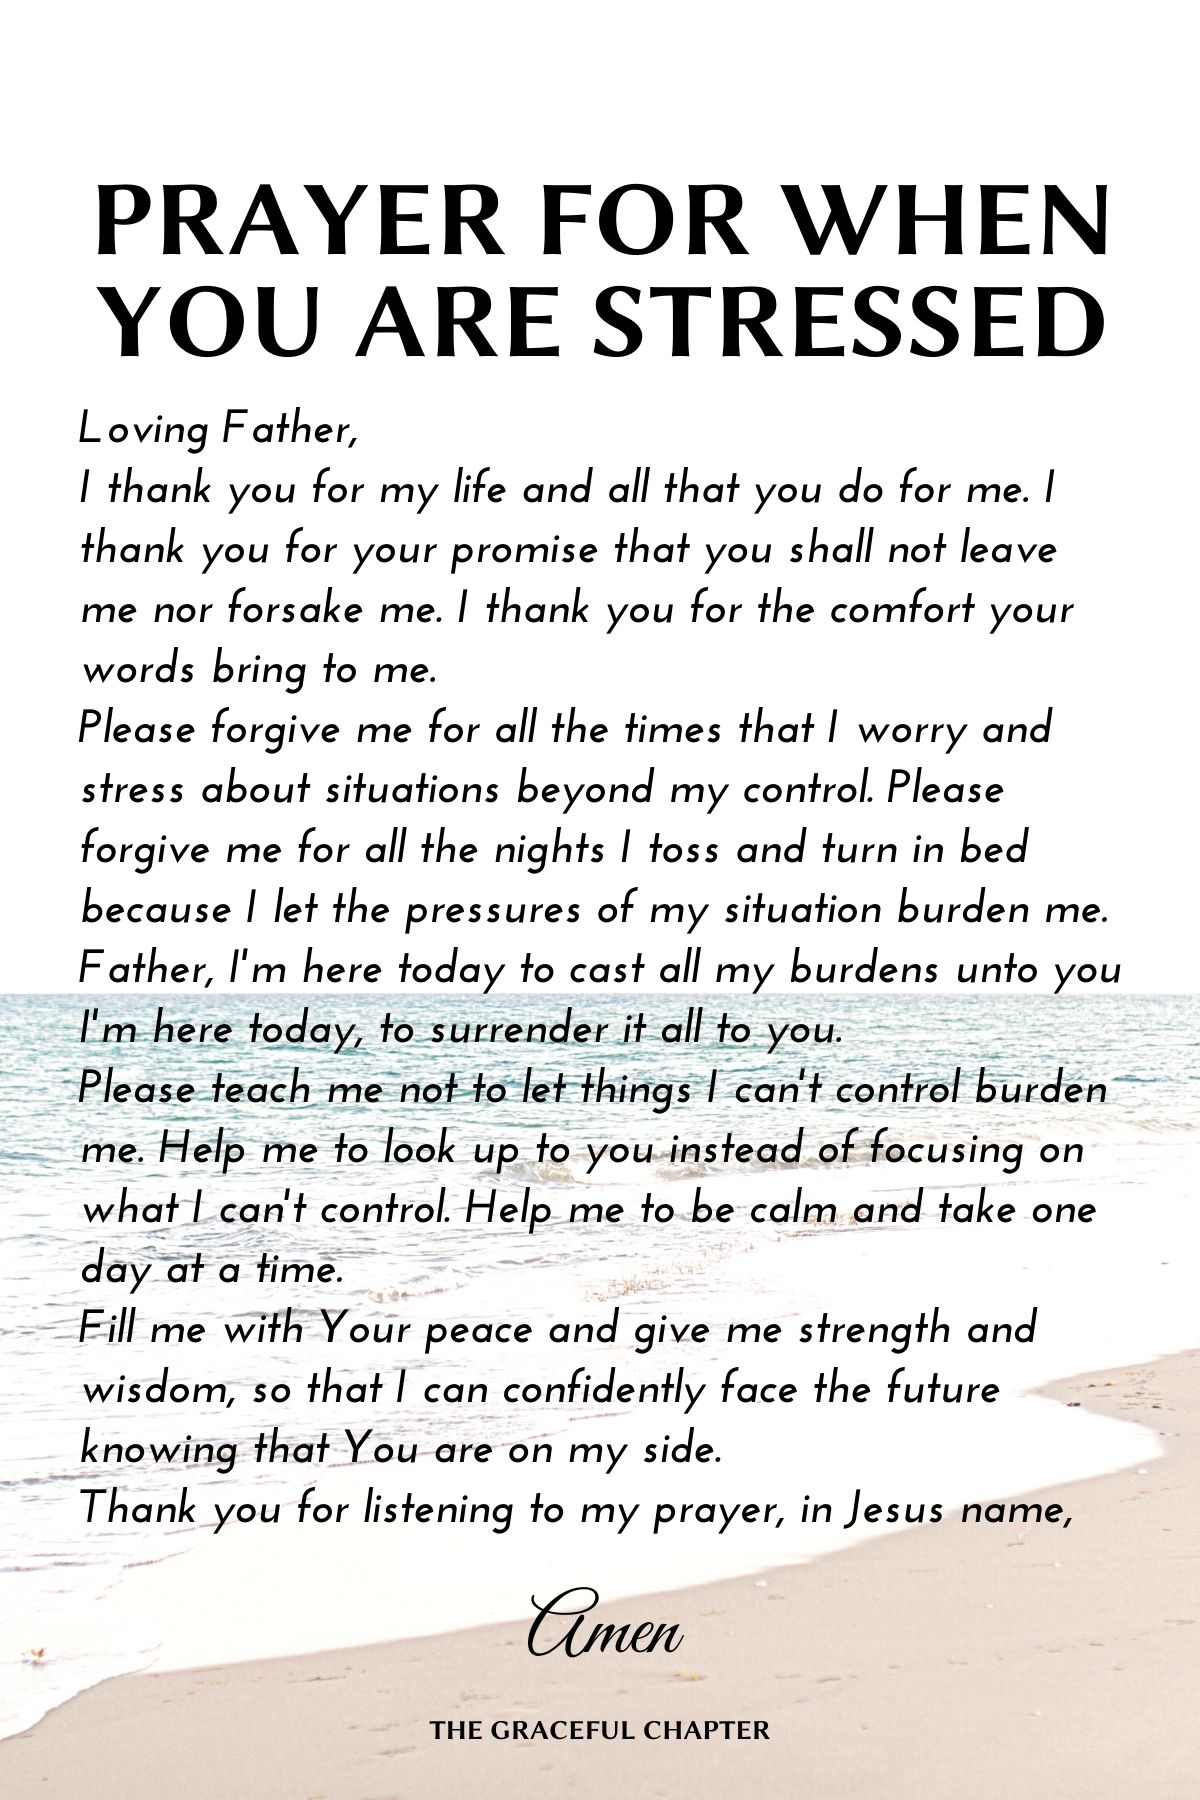 Prayer for when you are stressed